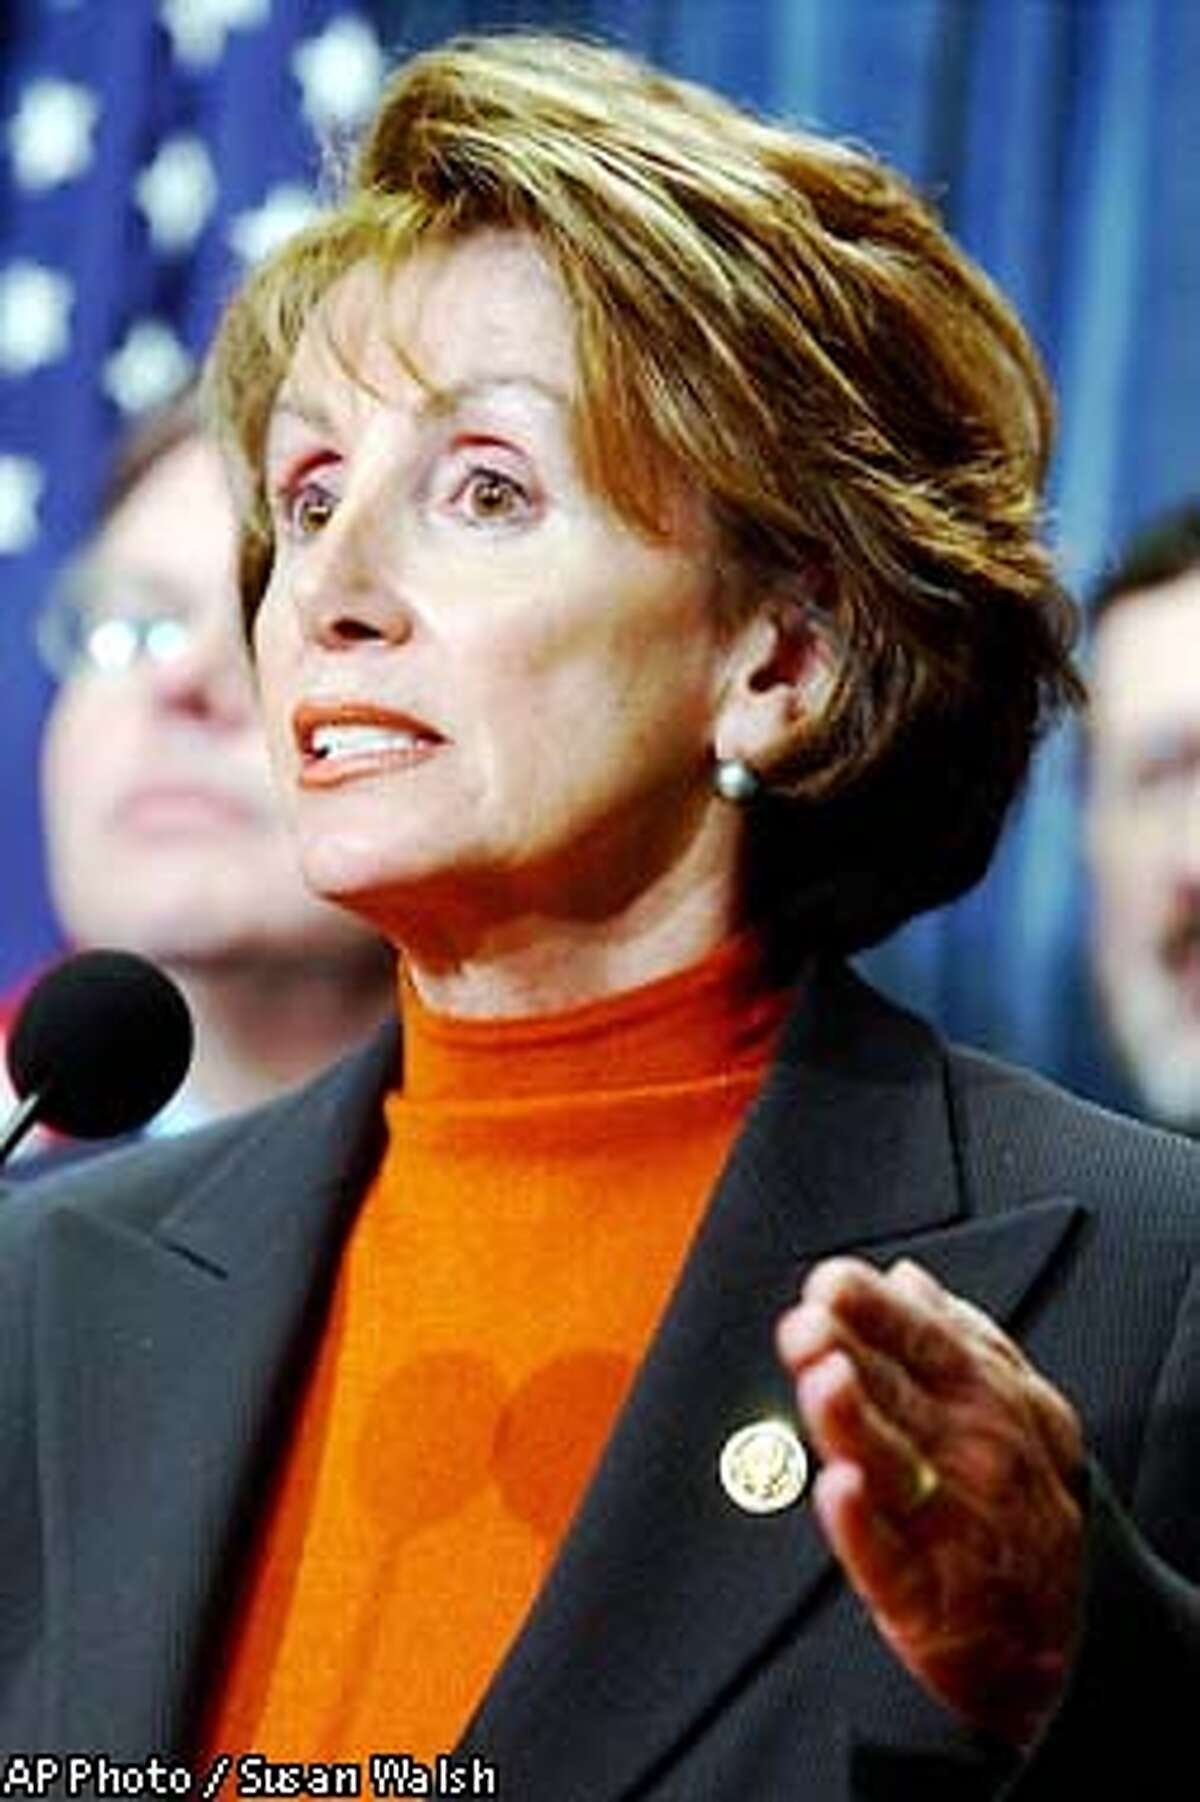 Incoming House Minority Leader Nancy Pelosi, D-Calif., outlines the Democratic economic stimulus package during a news conference on Capitol Hill in Washington, Monday, Jan. 6, 2003. President Bush unveils his plan Tuesday.(AP Photo/Susan Walsh)